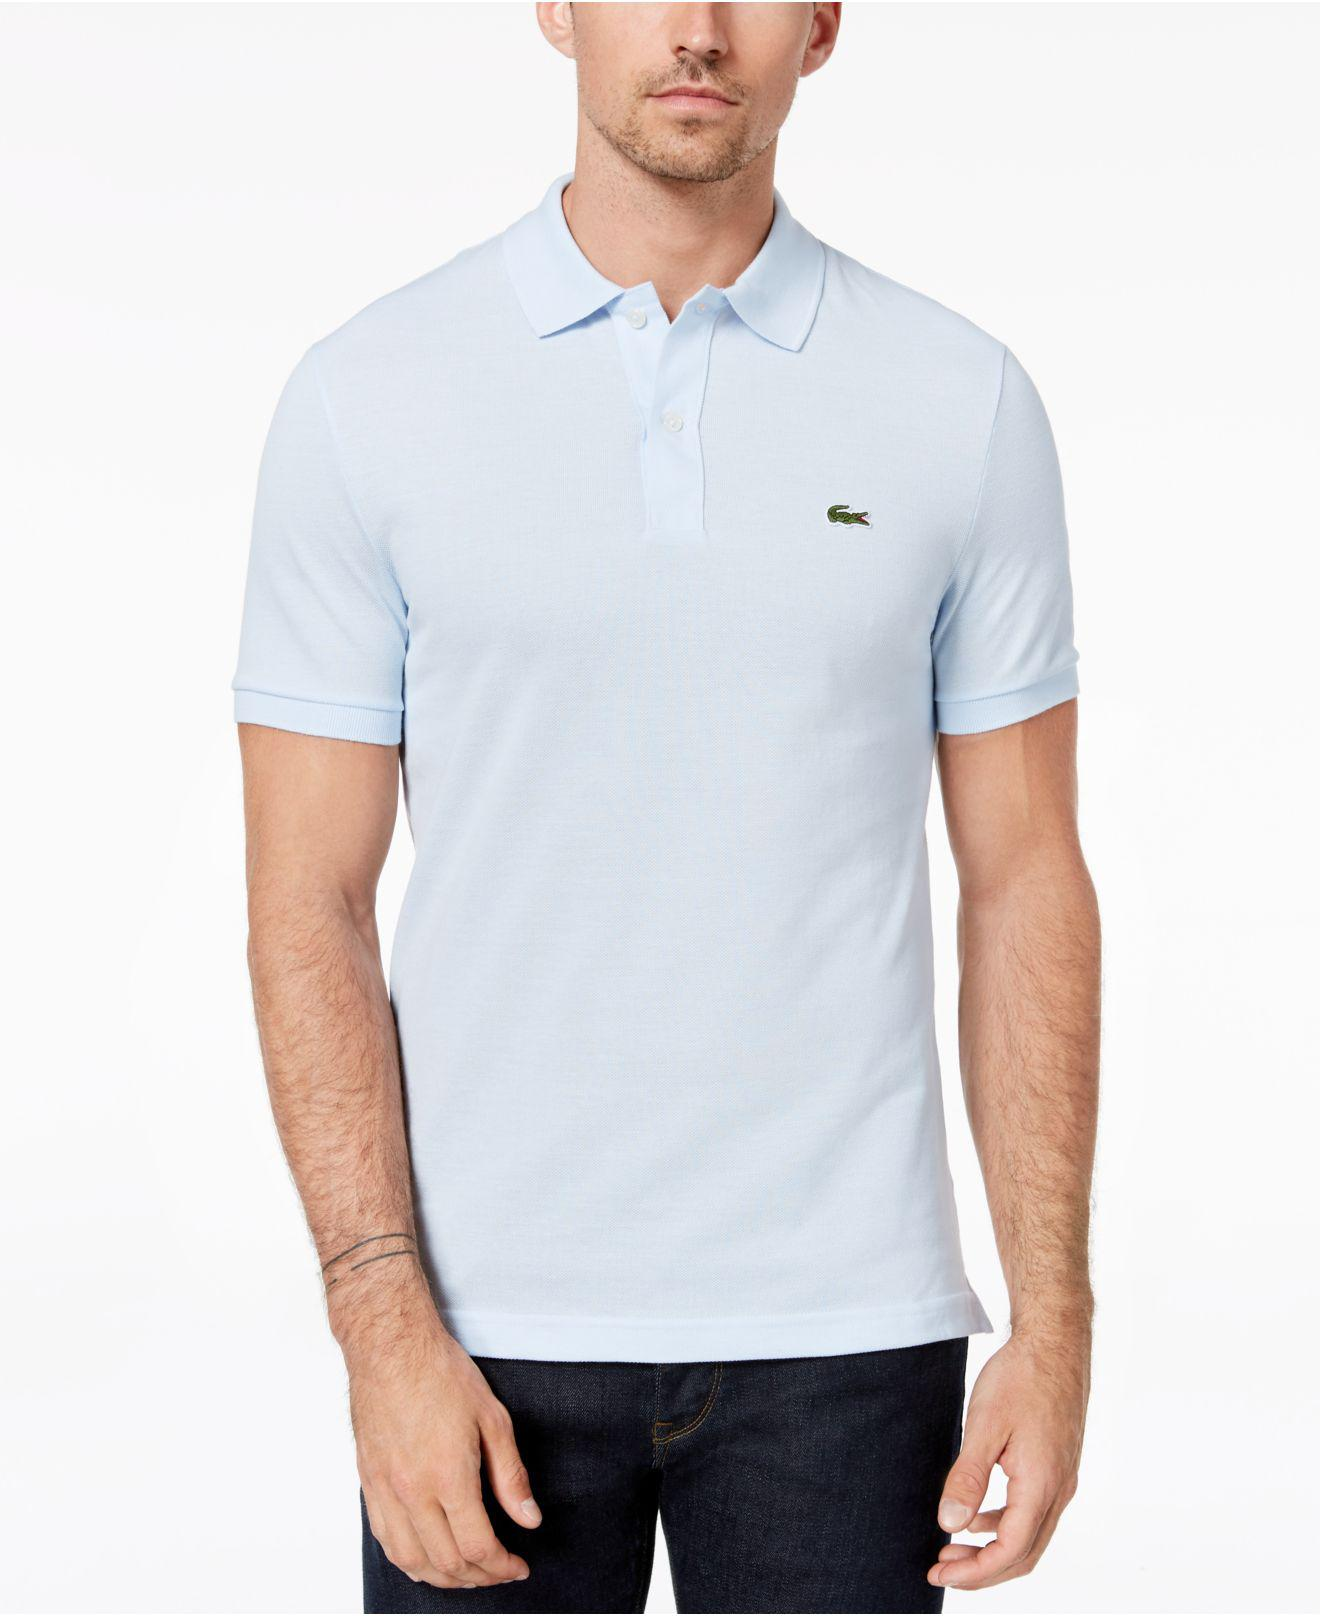 103db9196d5e Lyst - Lacoste Slim-fit Polo for Men